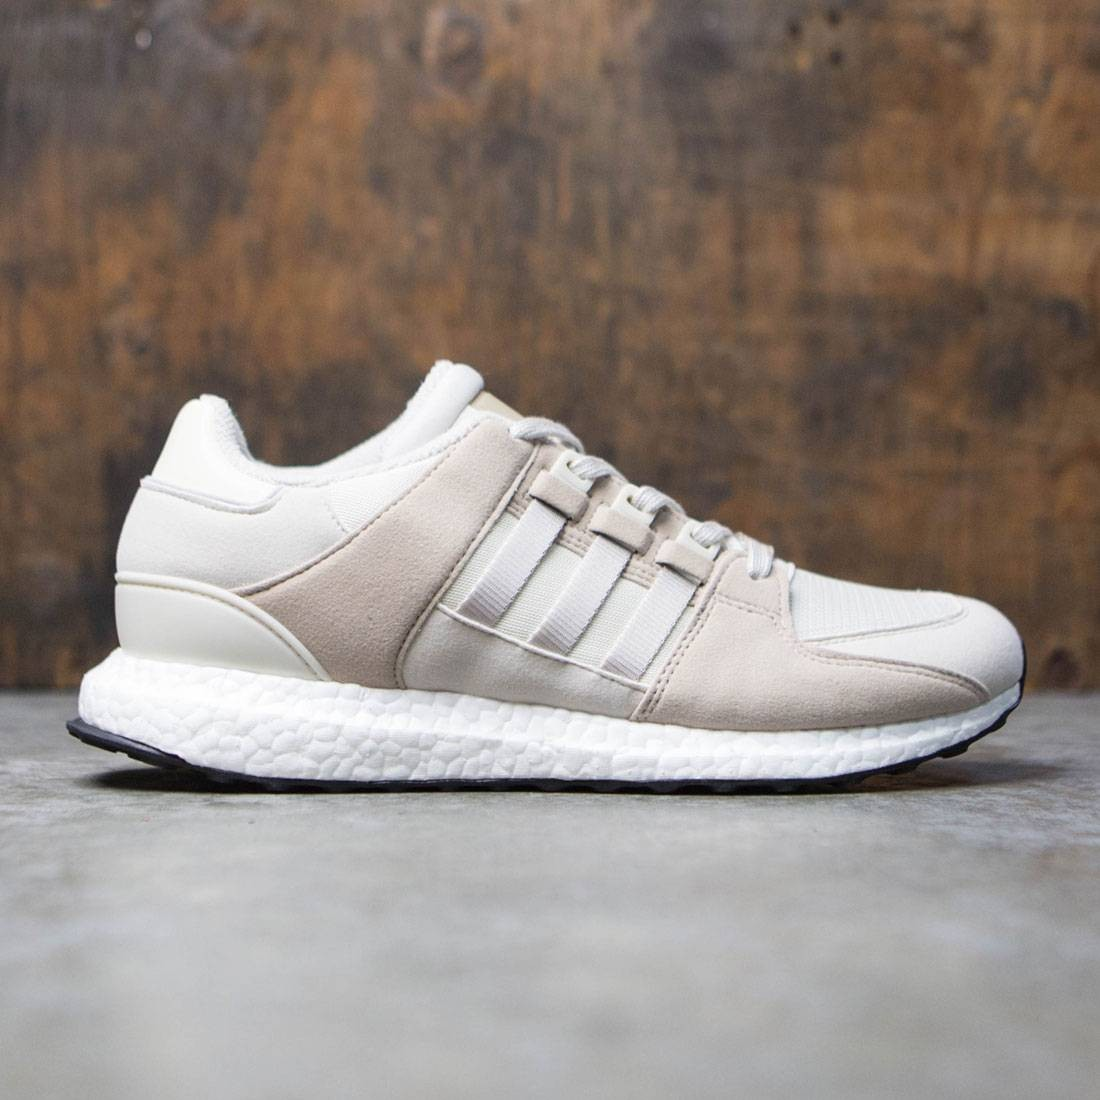 Adidas Men EQT SUPPORT ULTRA (white / cream white / talc / clear brown)